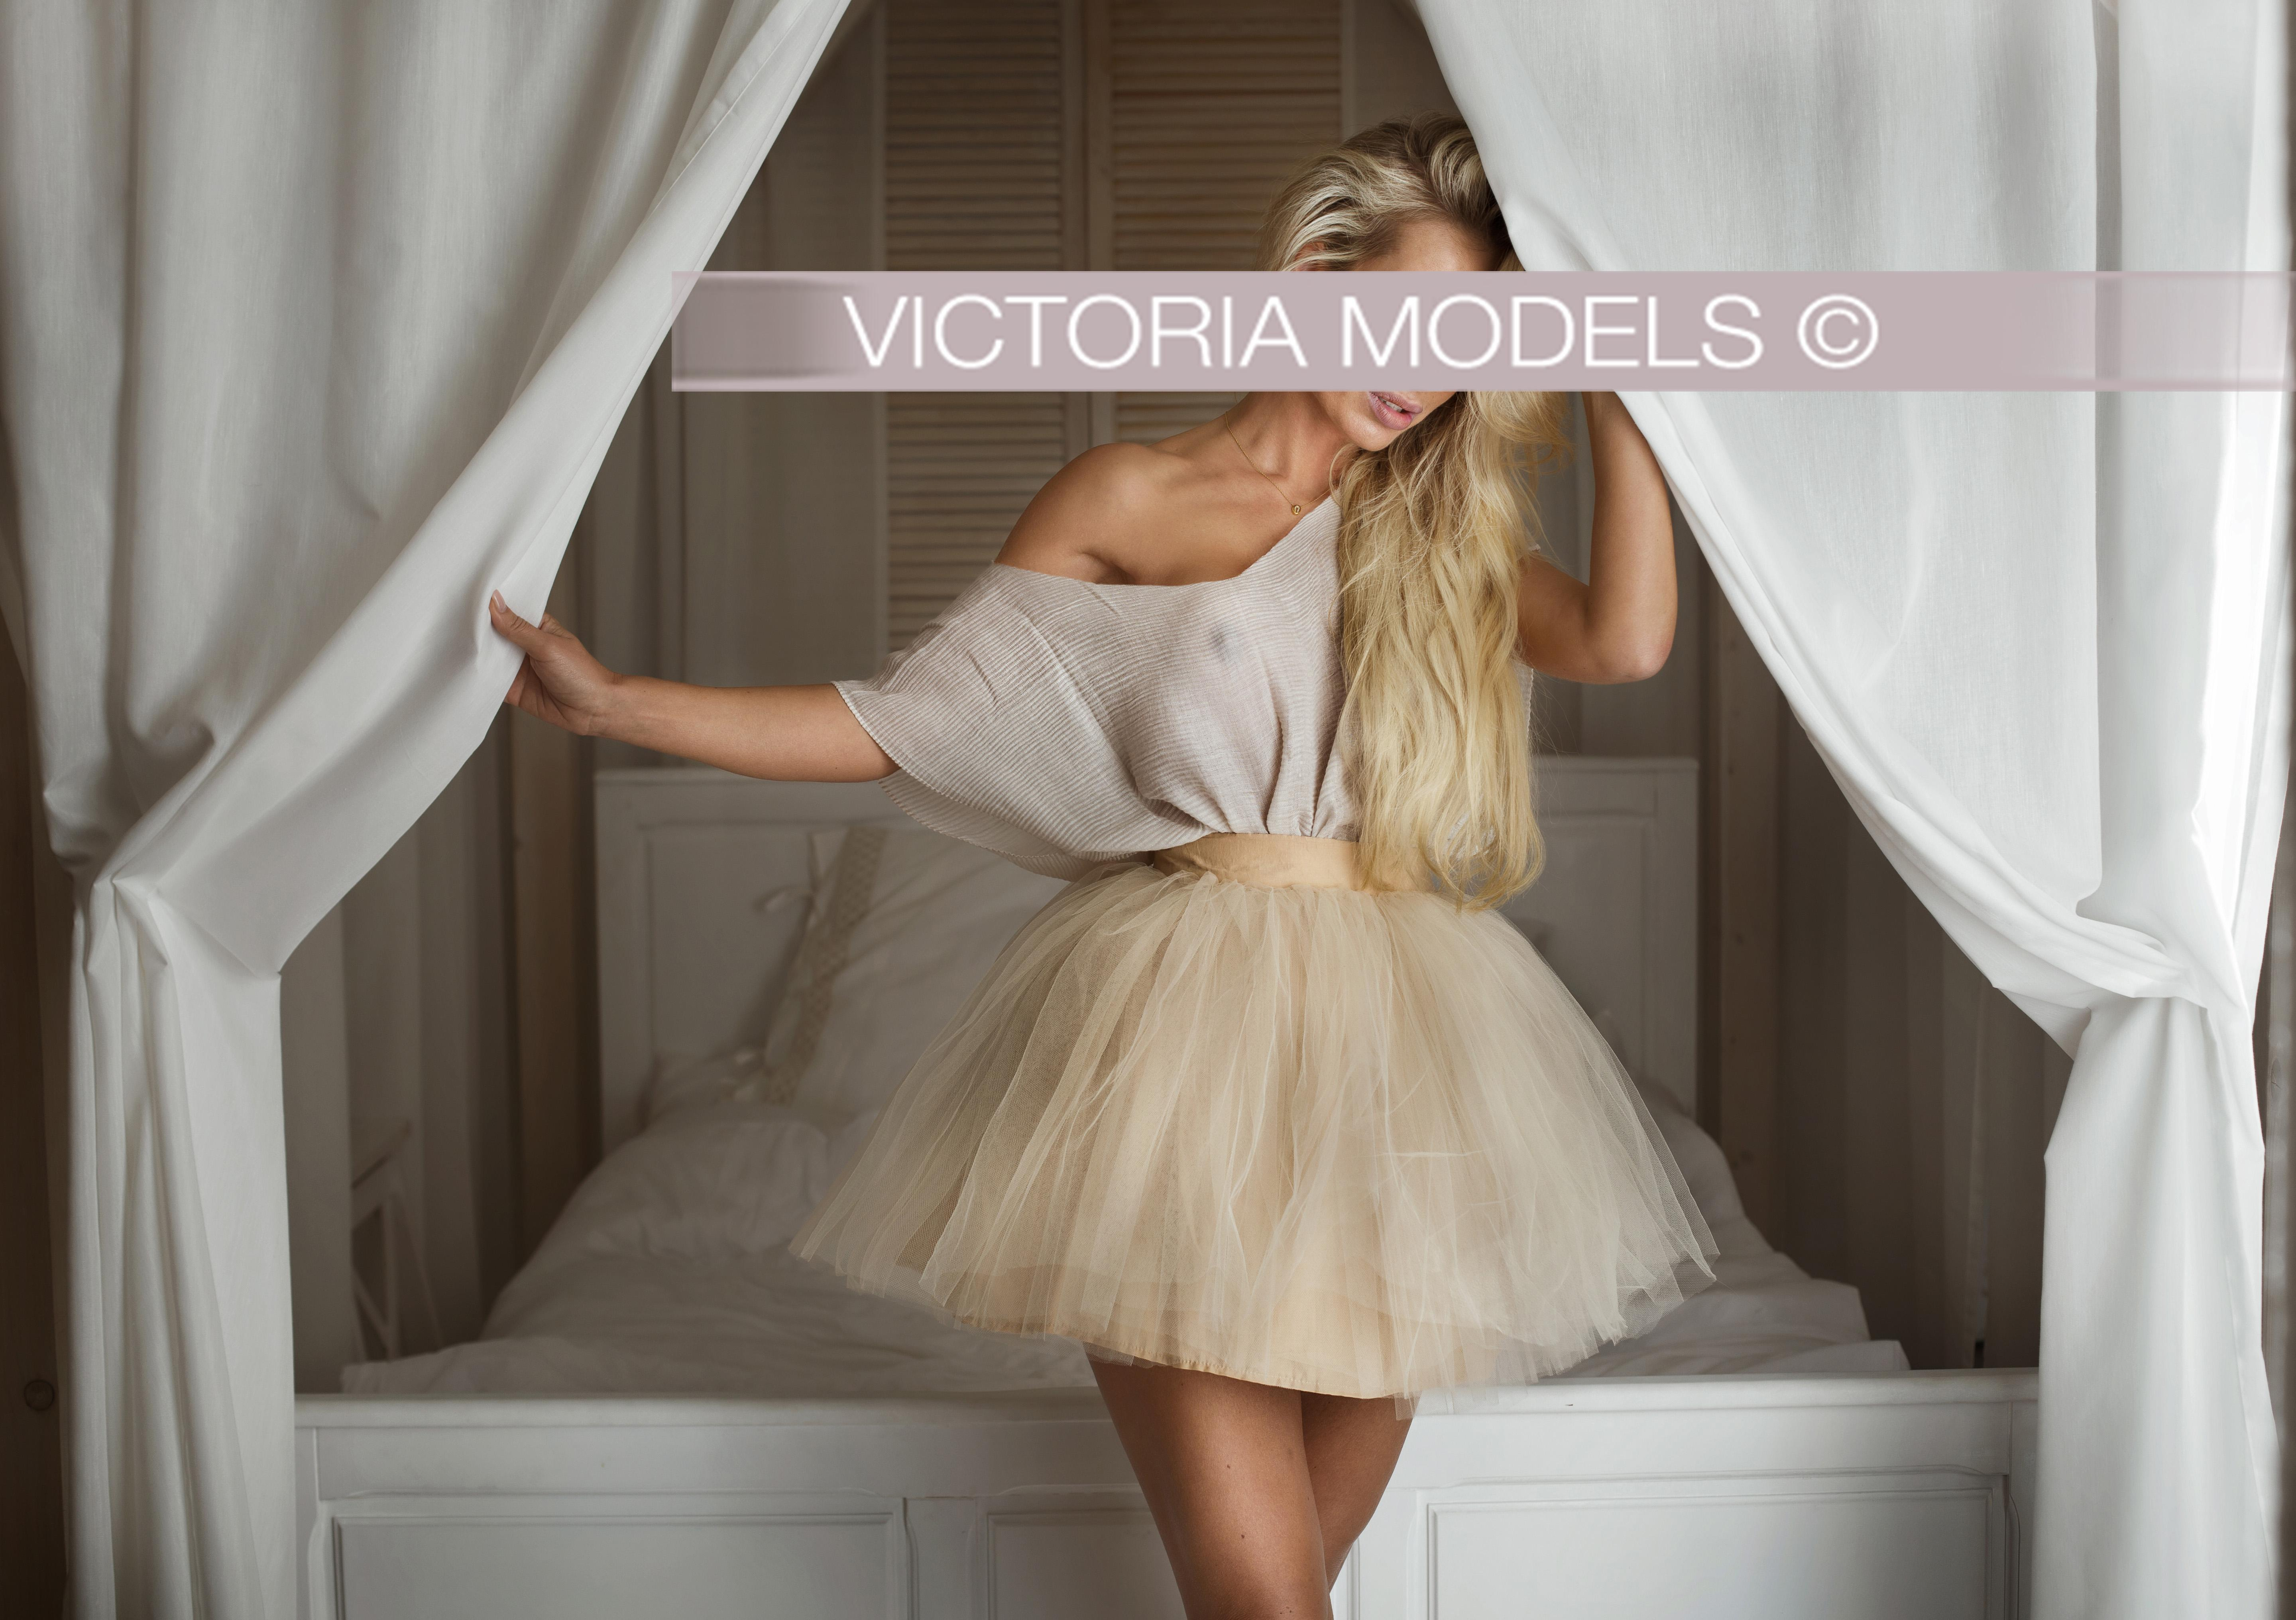 Samantha from Victoria Models